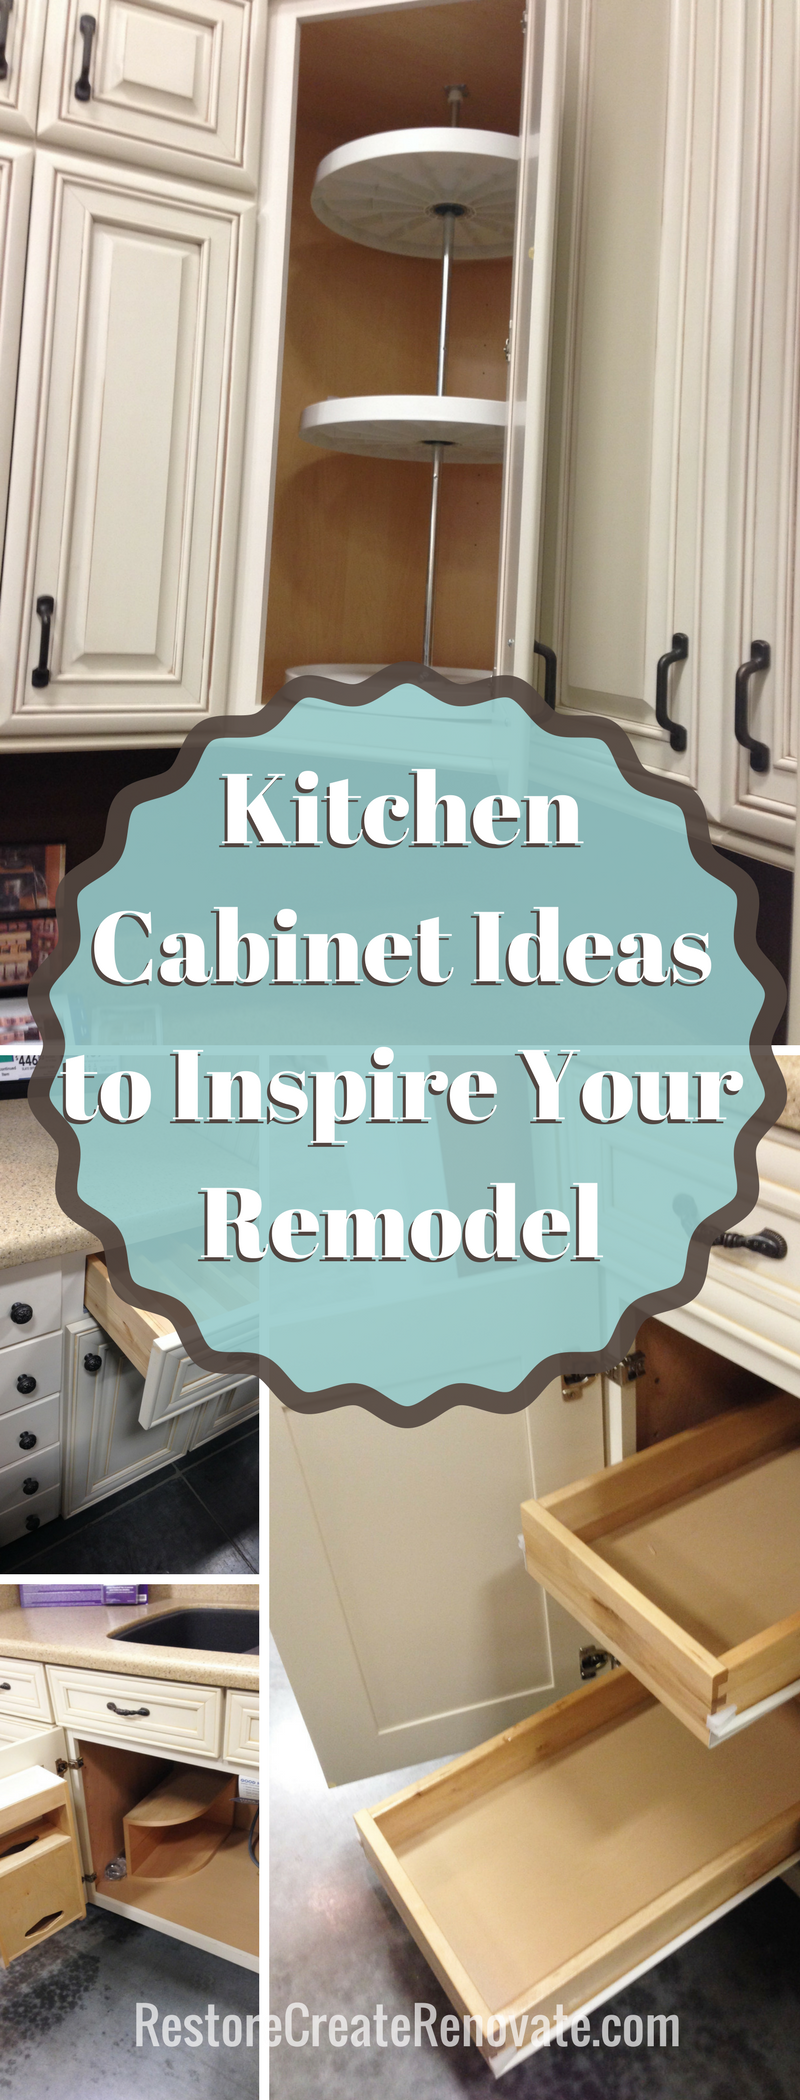 10 Ideas for Wood Kitchen Cabinets ~Upgrades You Might Want To ...